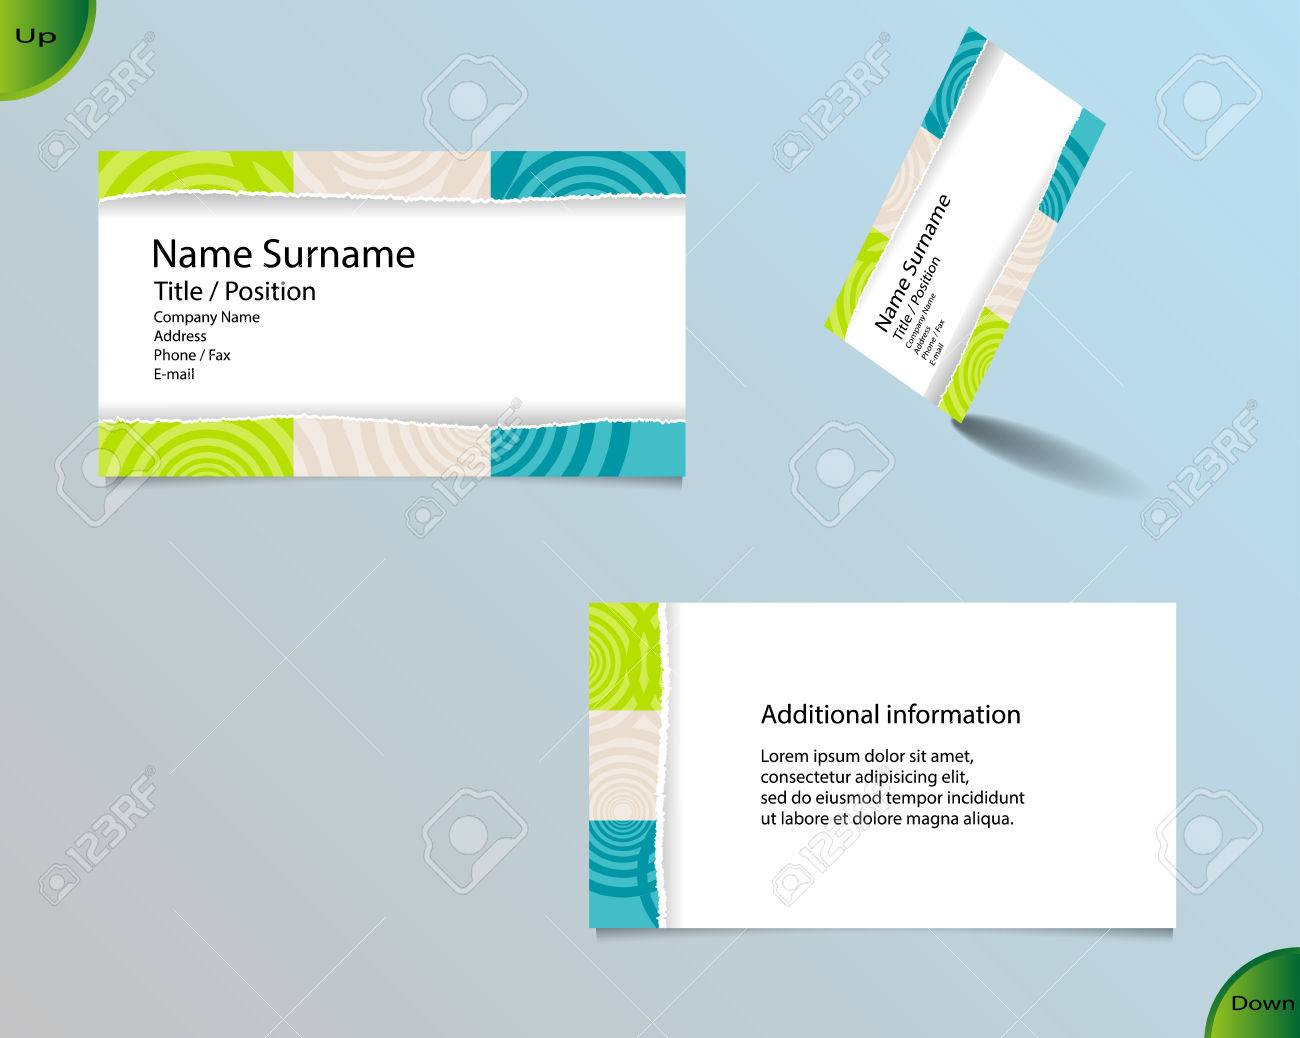 Business card layout with modern white color and pallet of trendy business card layout with modern white color and pallet of trendy colors and ornaments made from magicingreecefo Choice Image